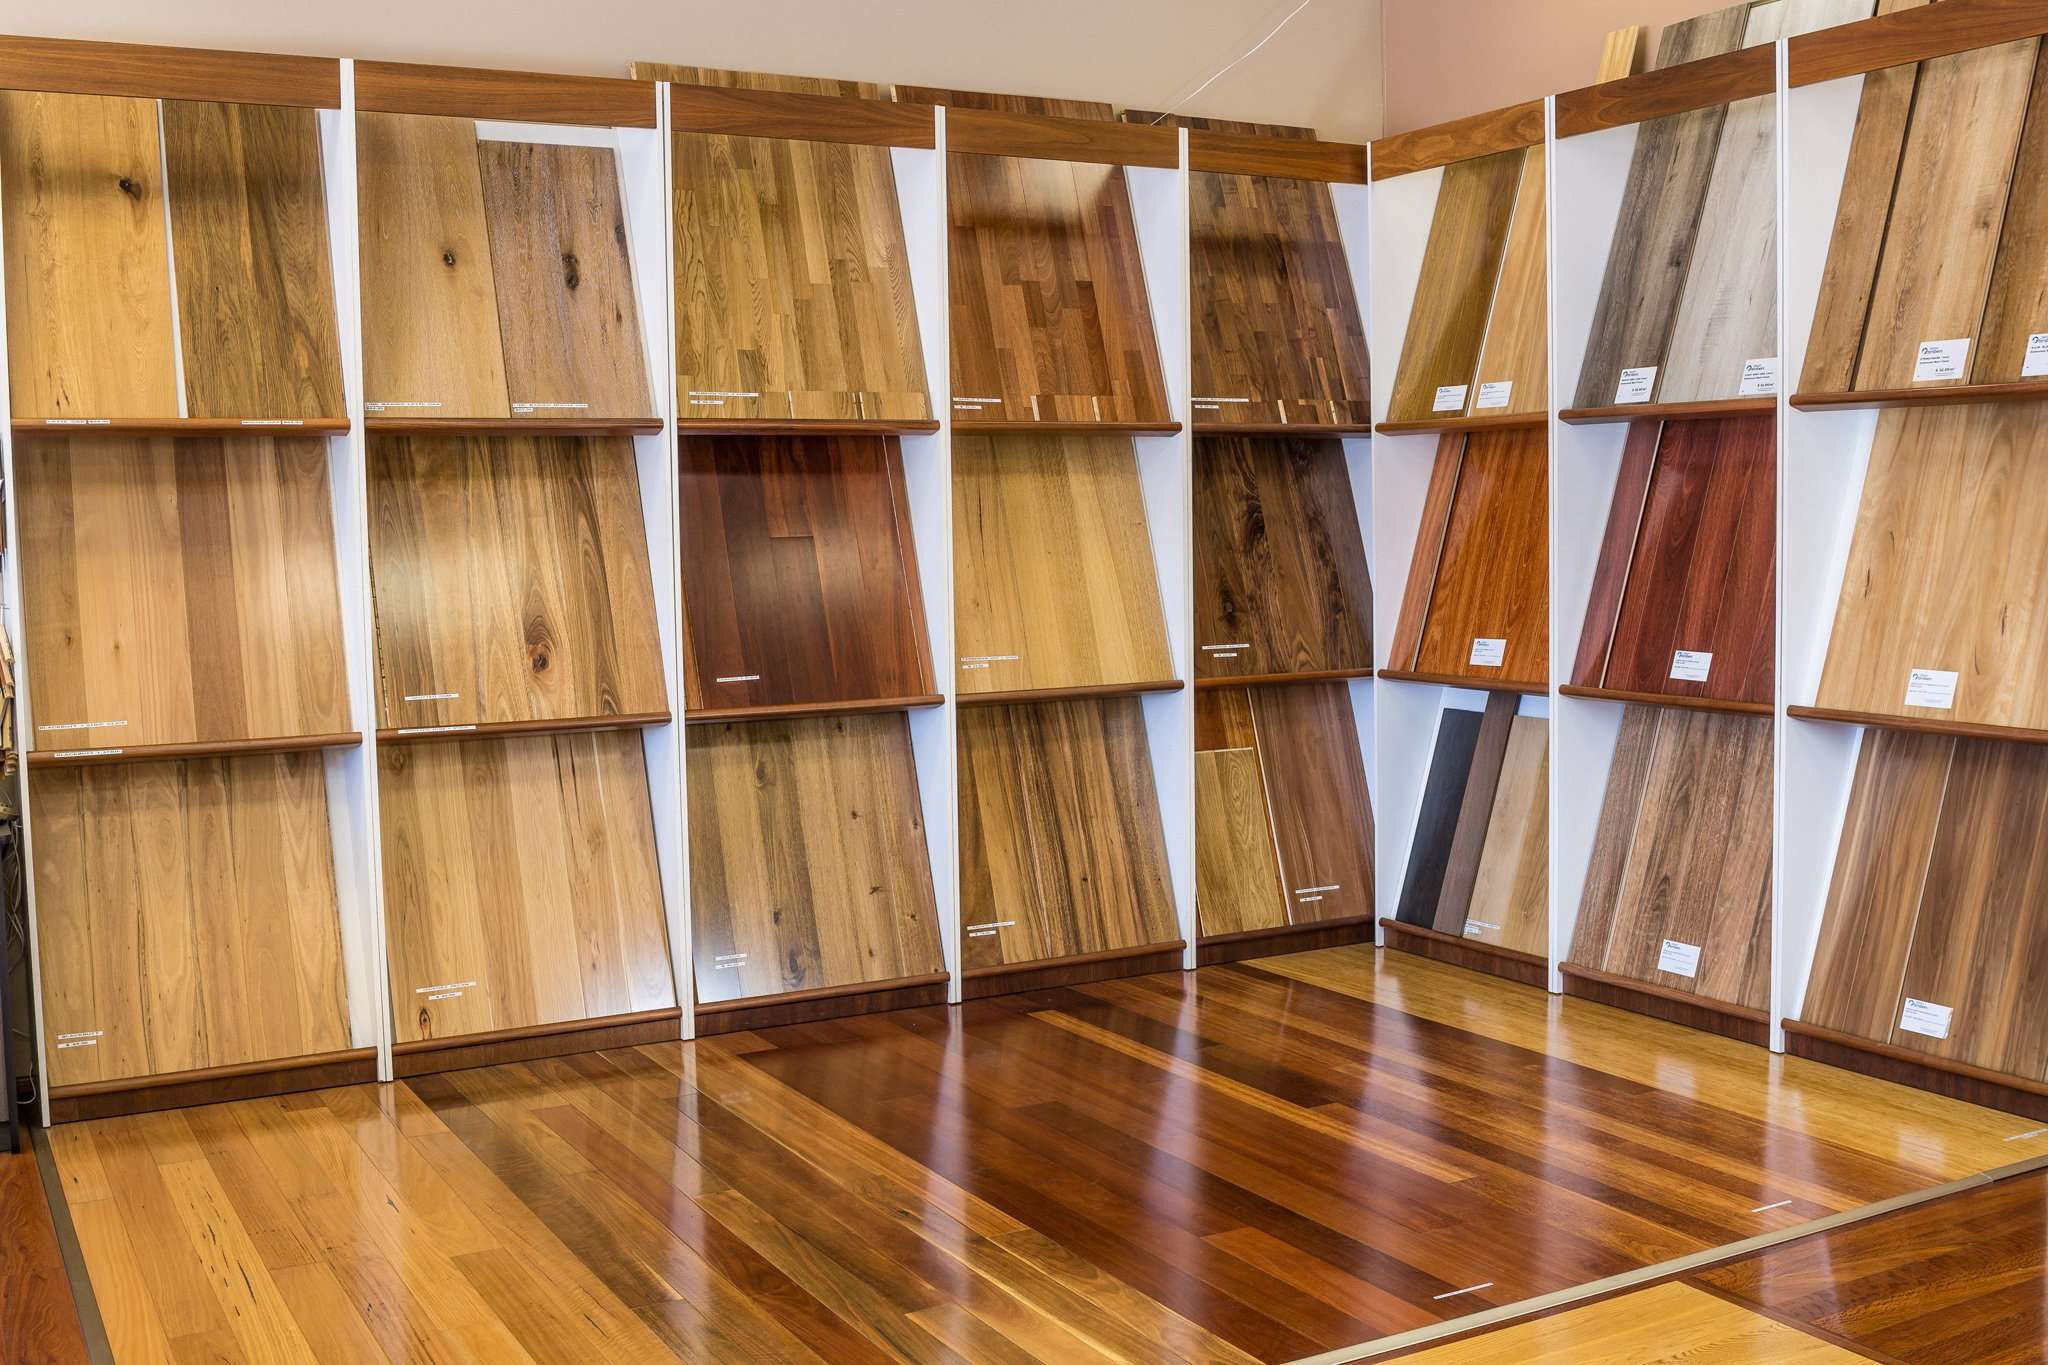 what is average cost to refinish hardwood floors of wood floor price lists a1 wood floors in 12mm laminate on sale 28 00 ma²